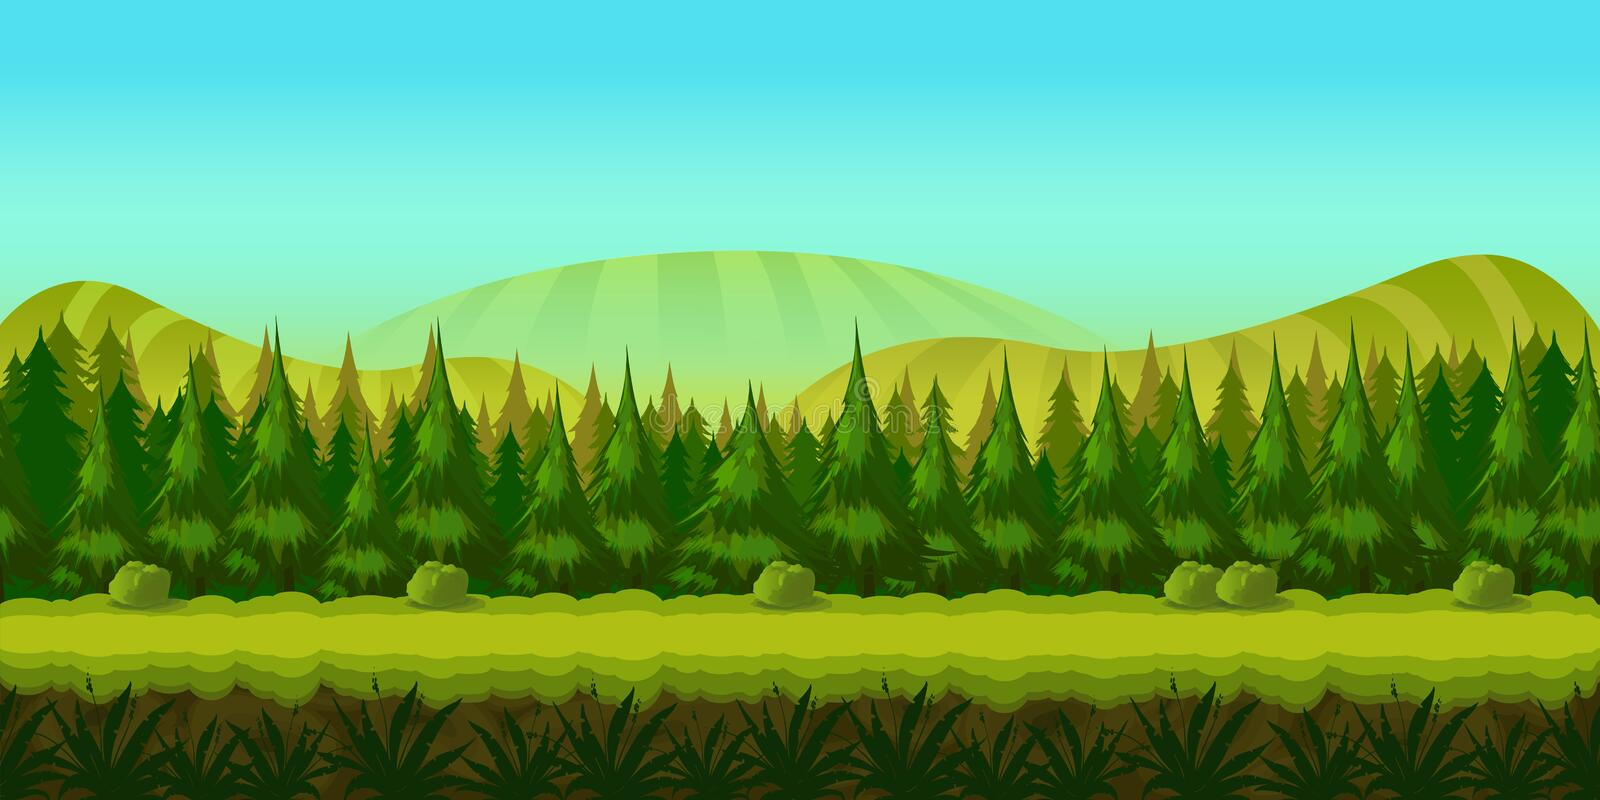 Background for you game with green forest on foreground and hills and fields on background. Illustration. clean and bright stock illustration